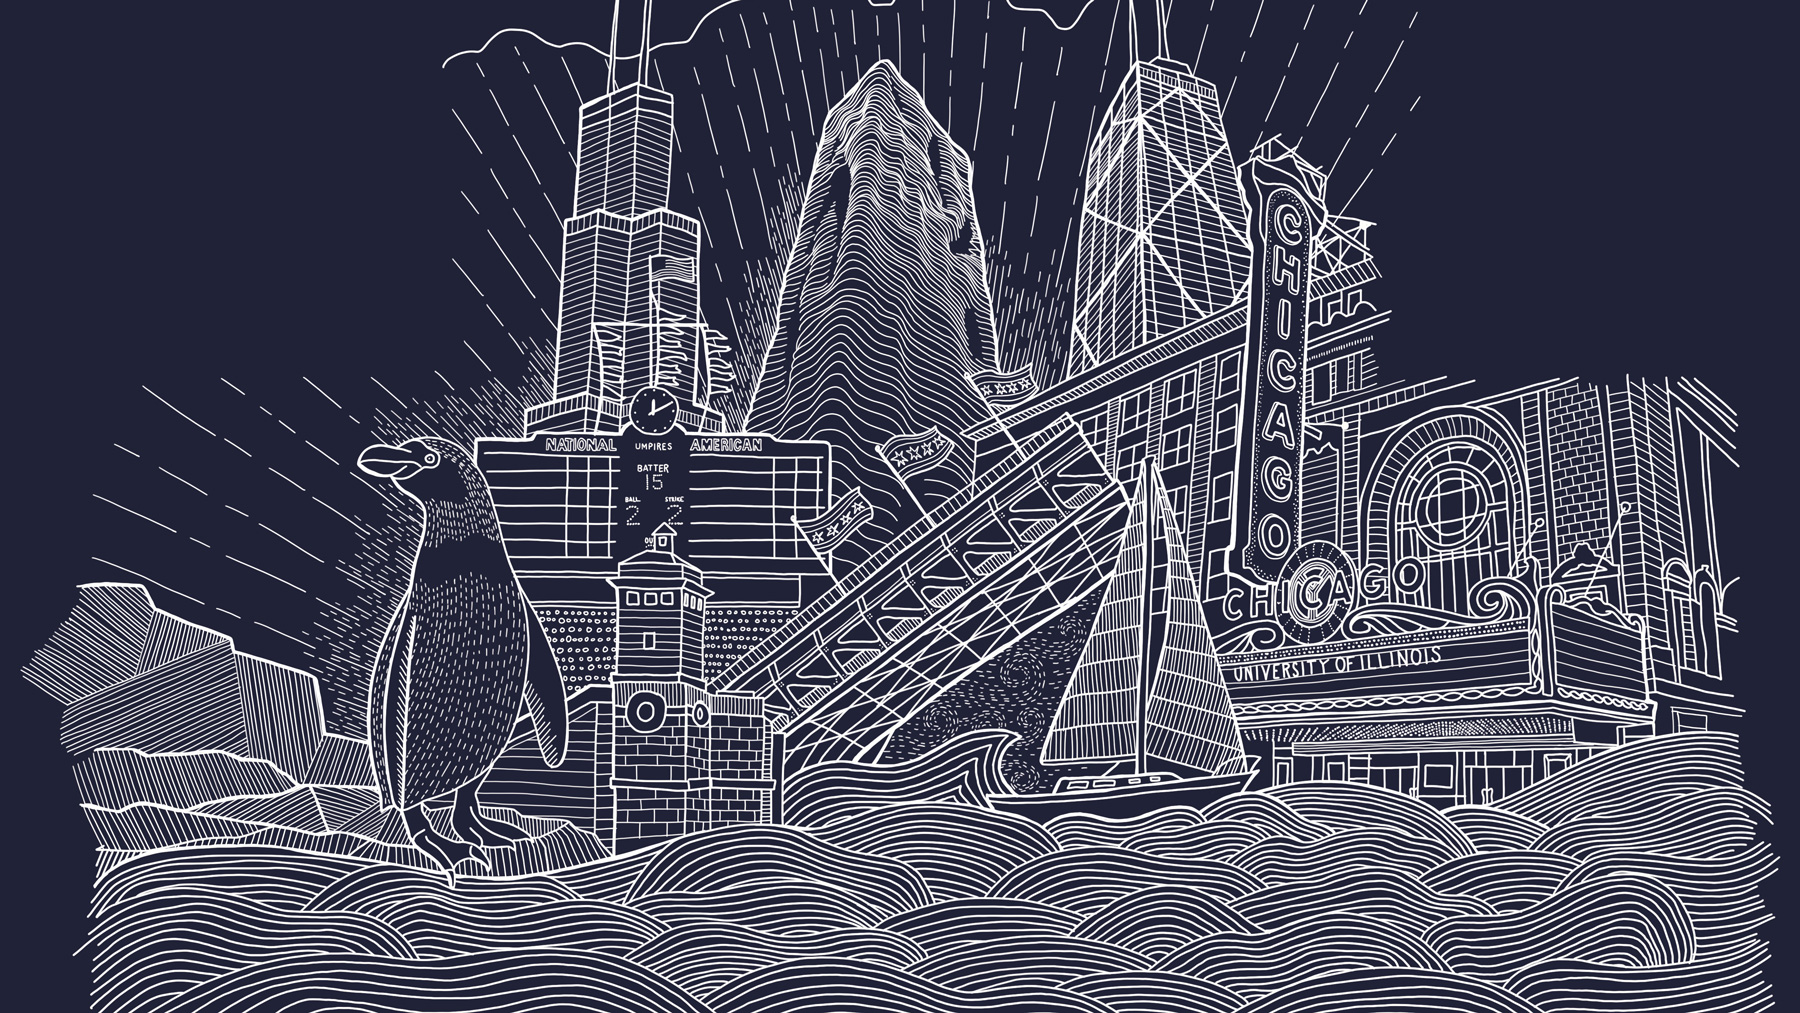 illustration by Nate Azark includes iconic Chicago locations